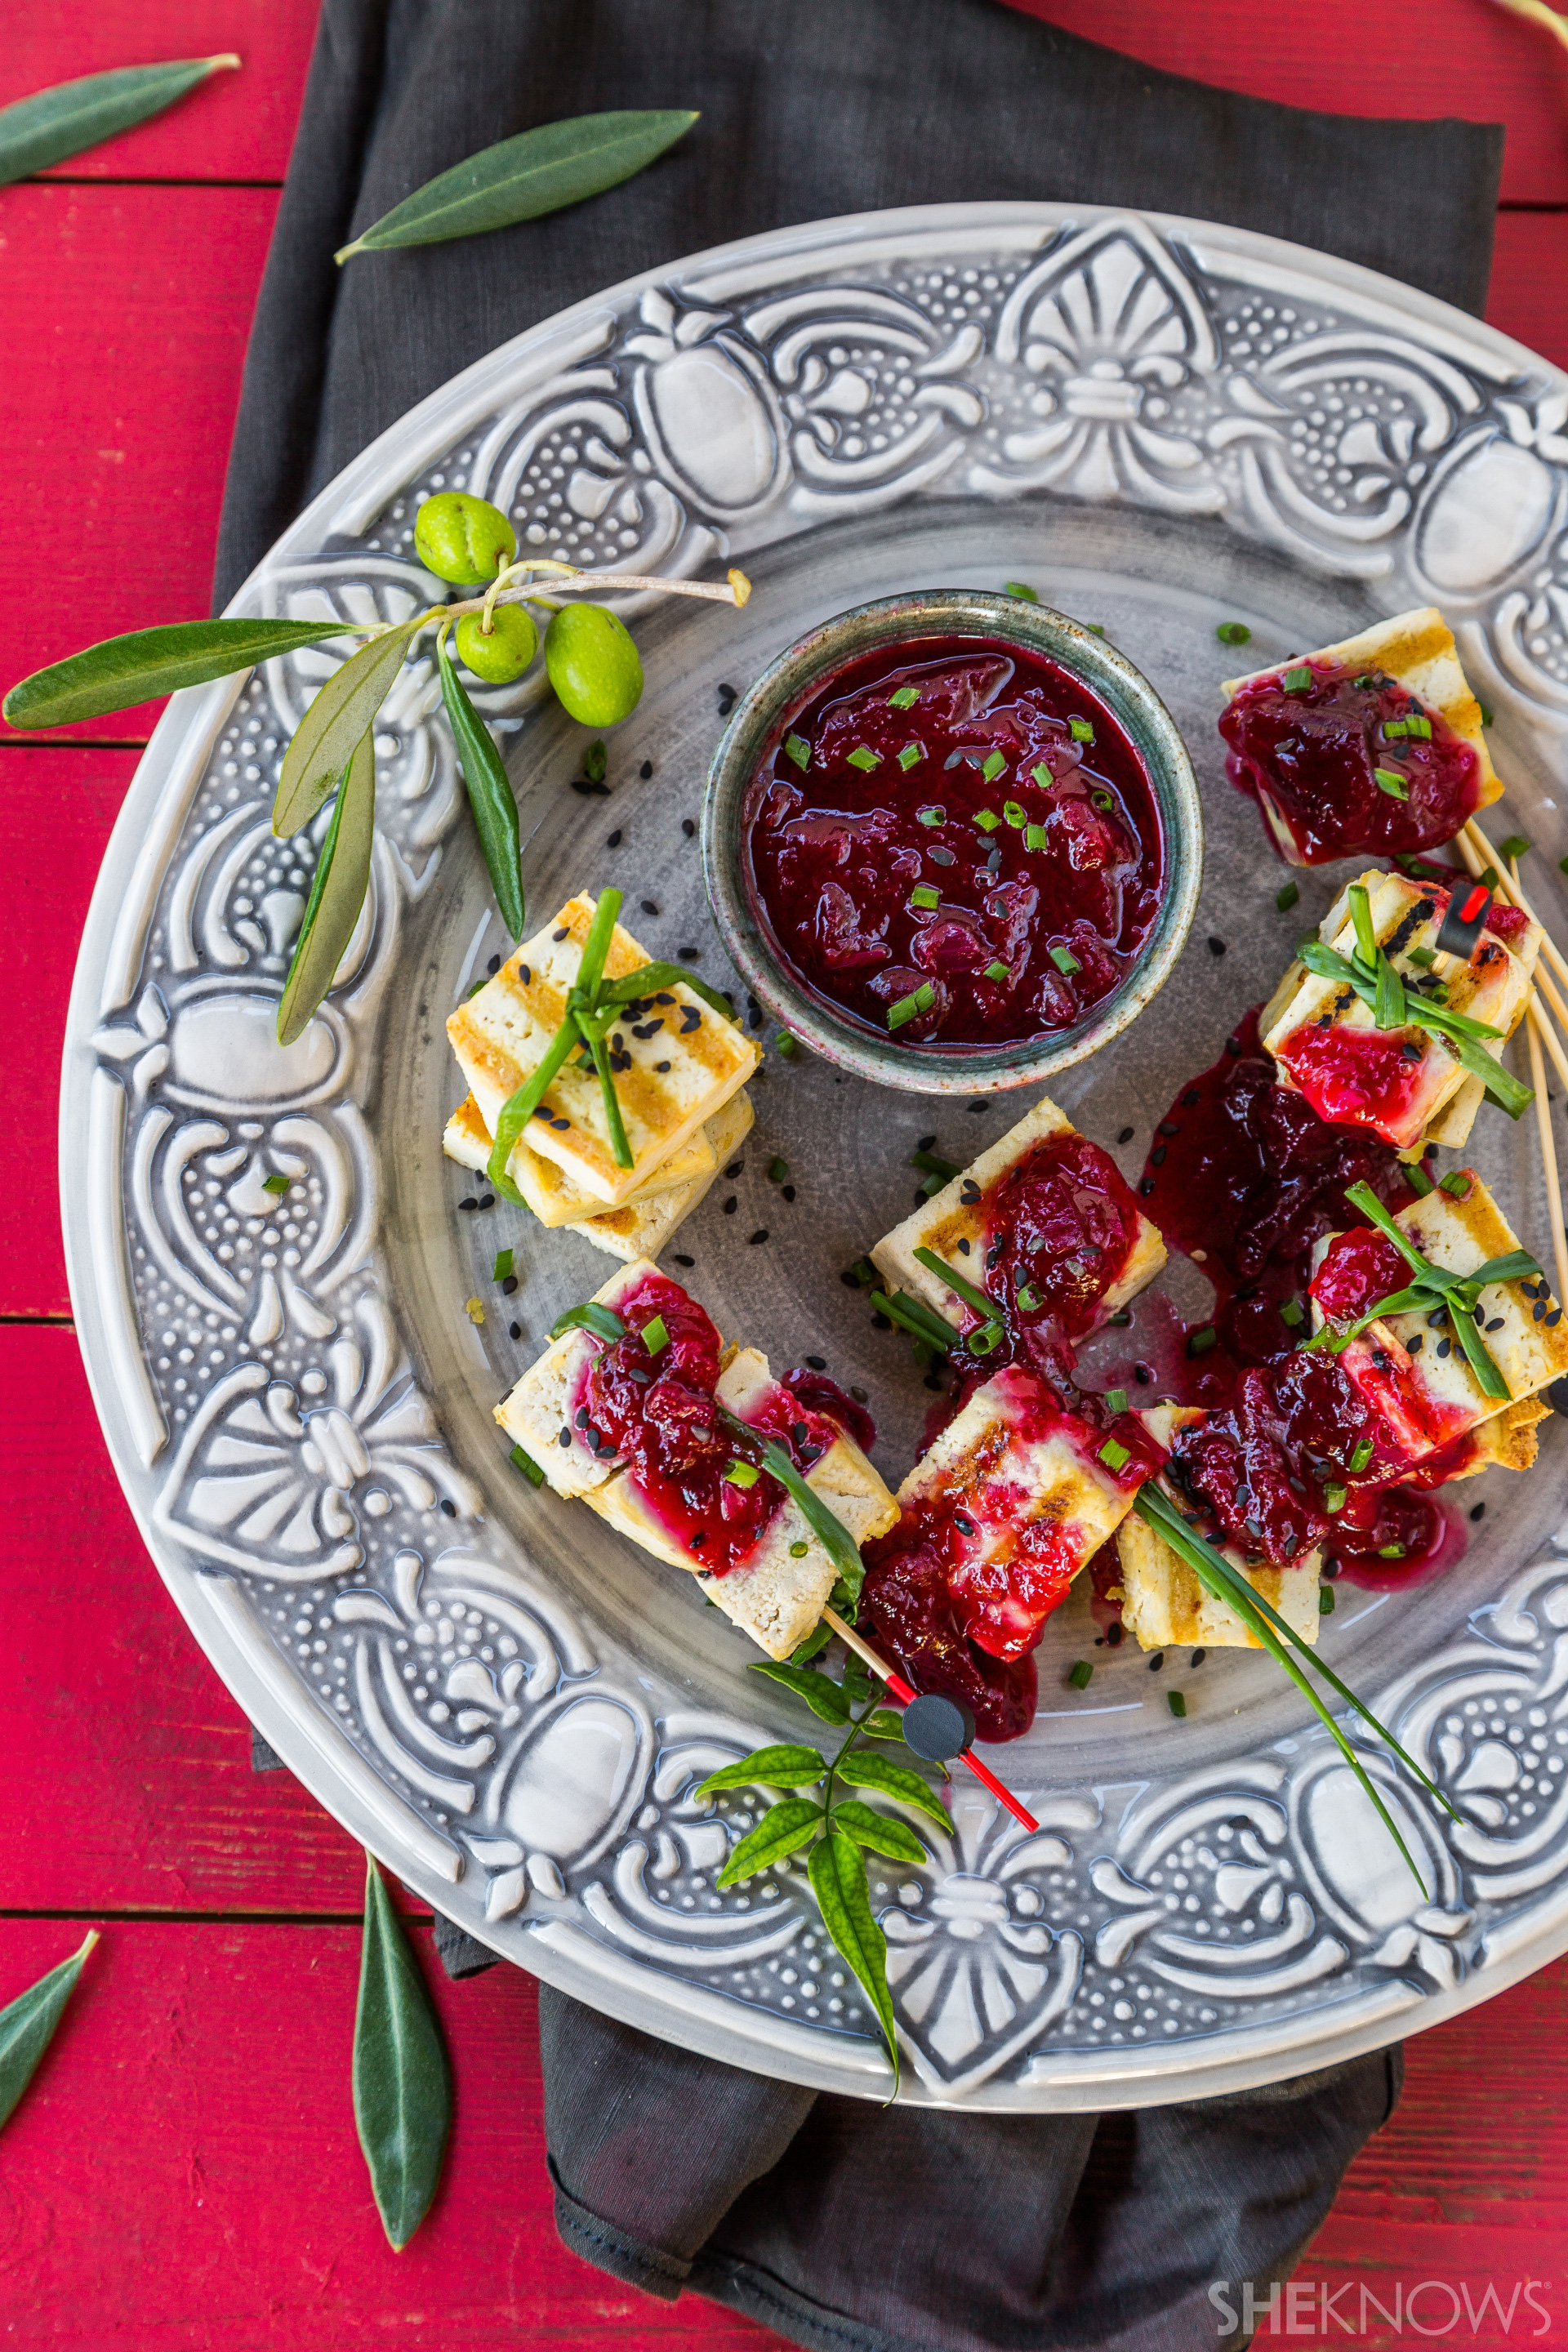 Vegan grilled tofu with homemade plum sauce is a delight